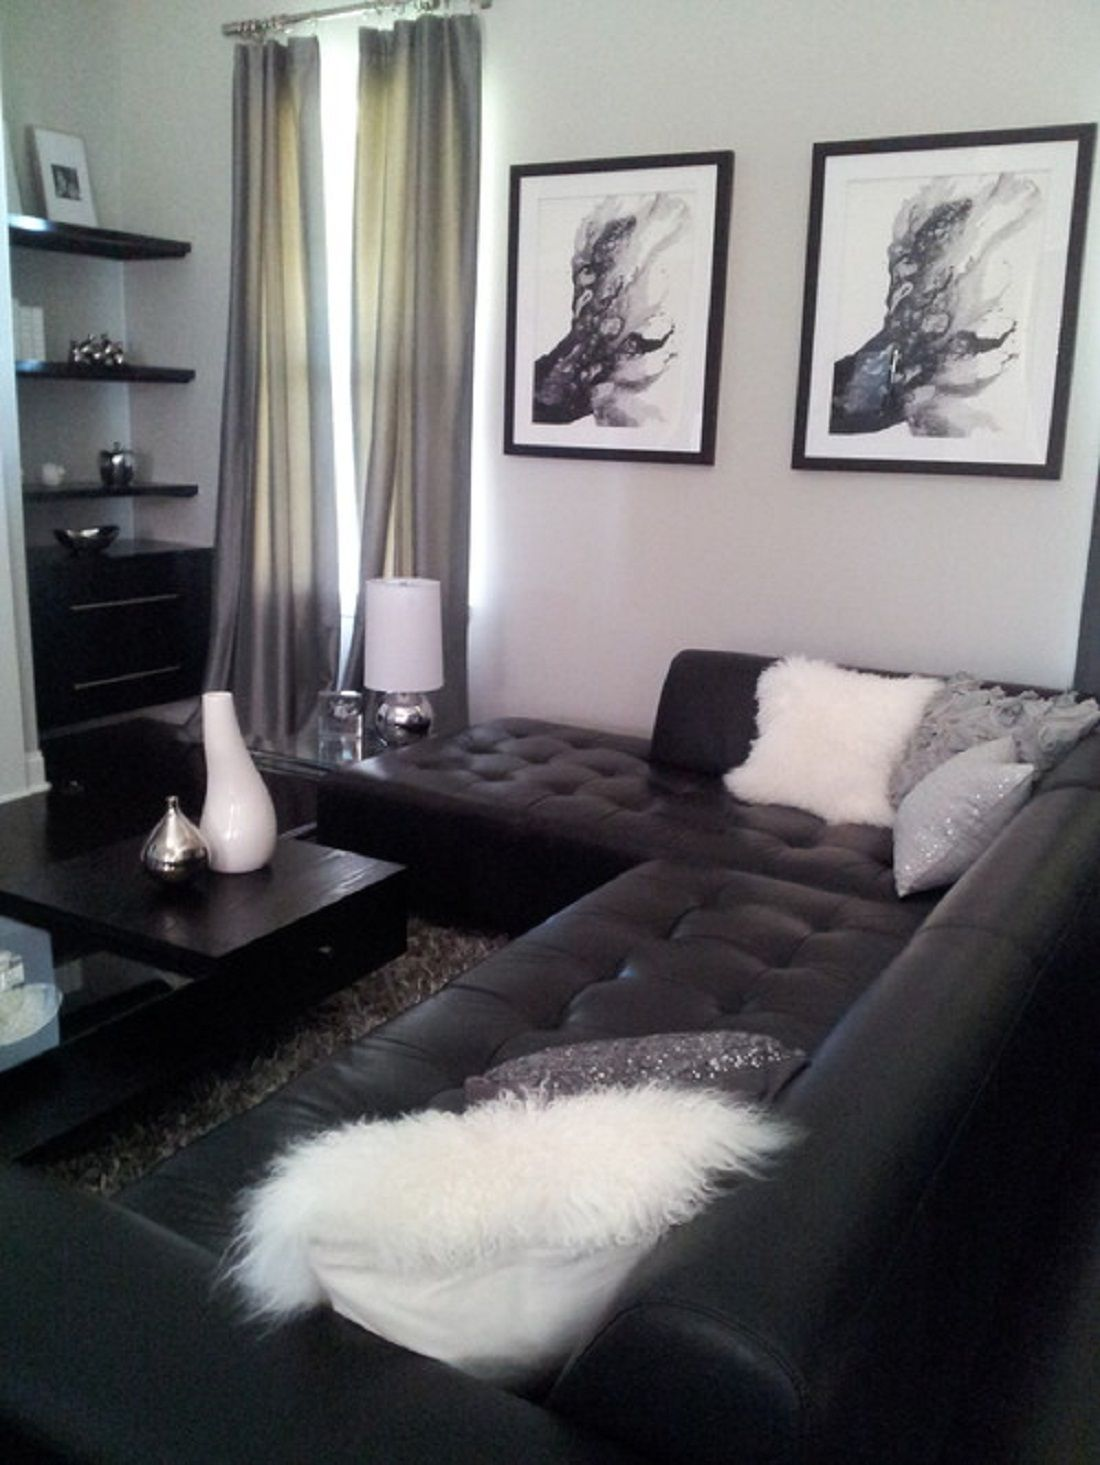 White Furniture Living Room Decorating Black And White Living Room Decor Black And White Home Decor